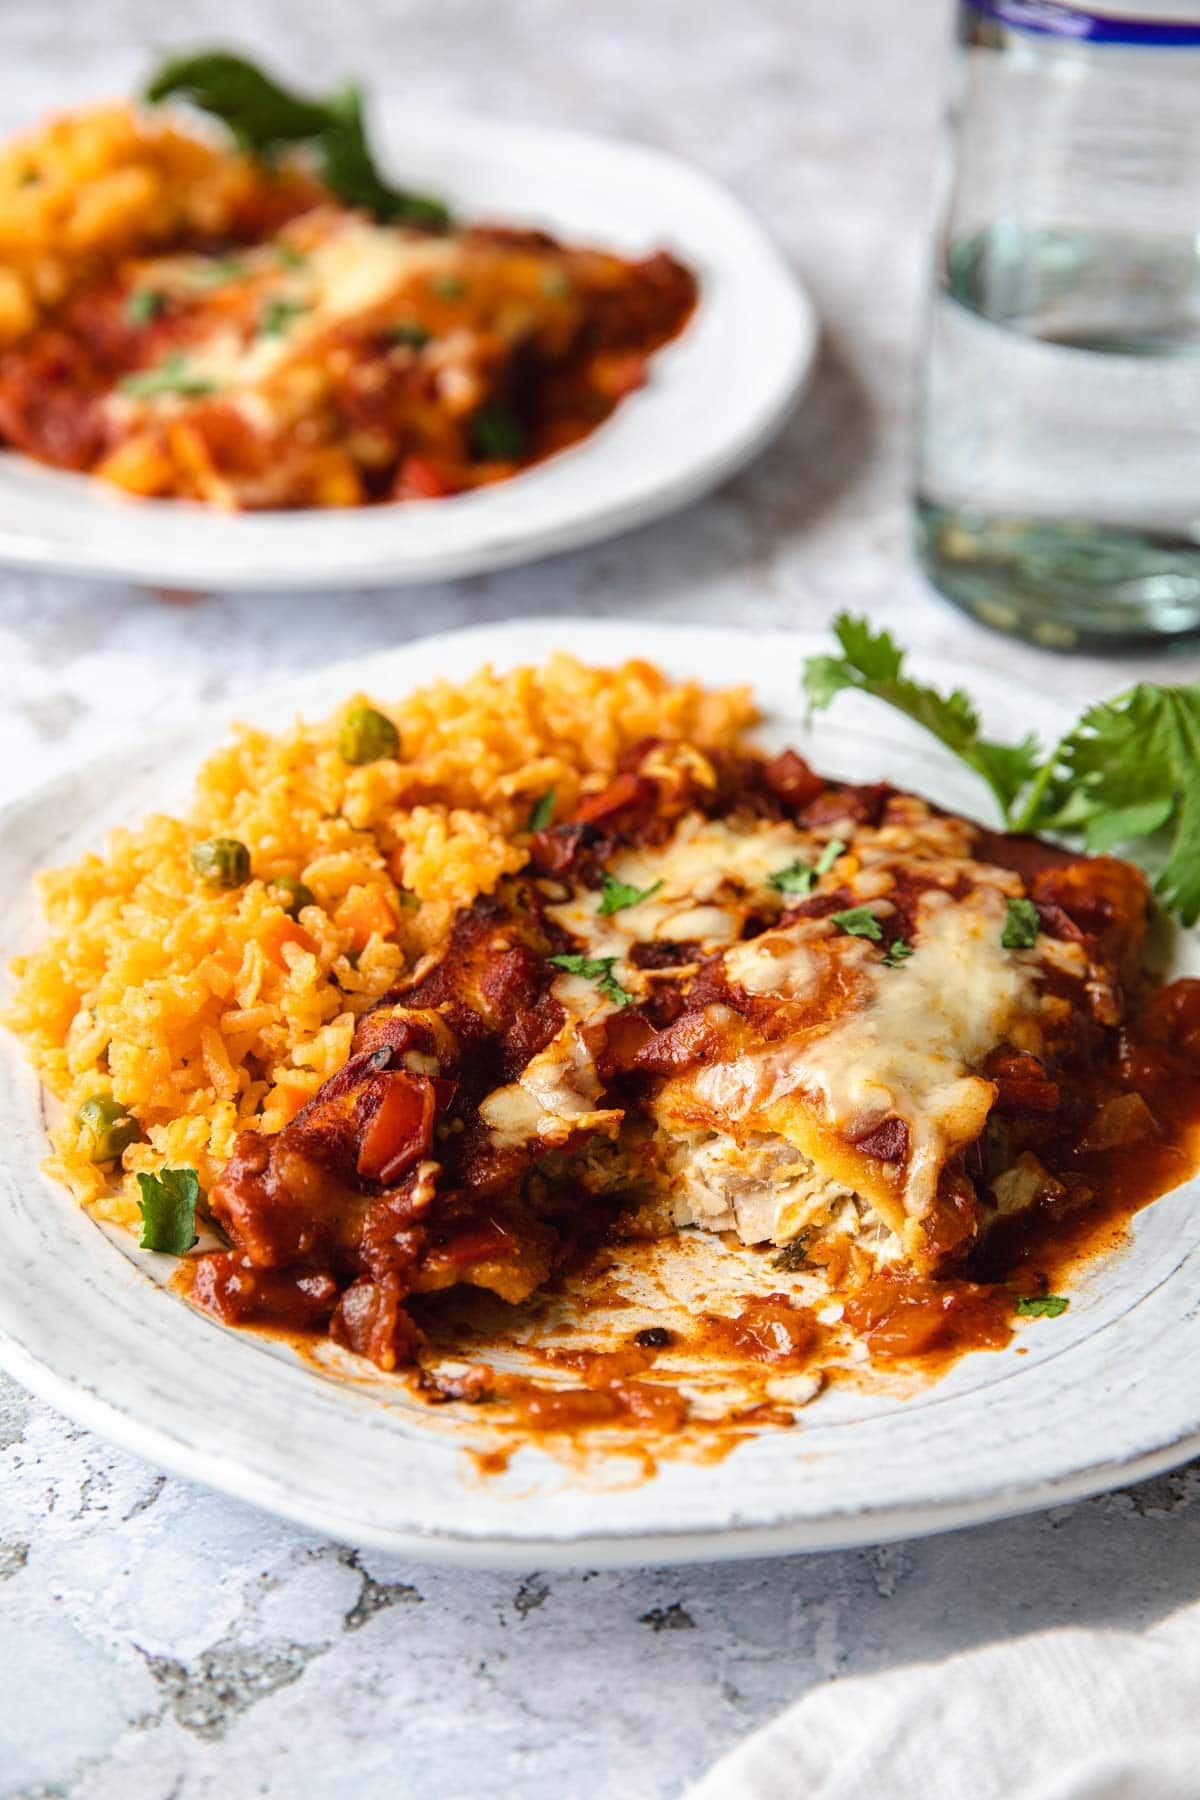 plate of enchiladas cut open to show chicken filling and a side of d spanish rice